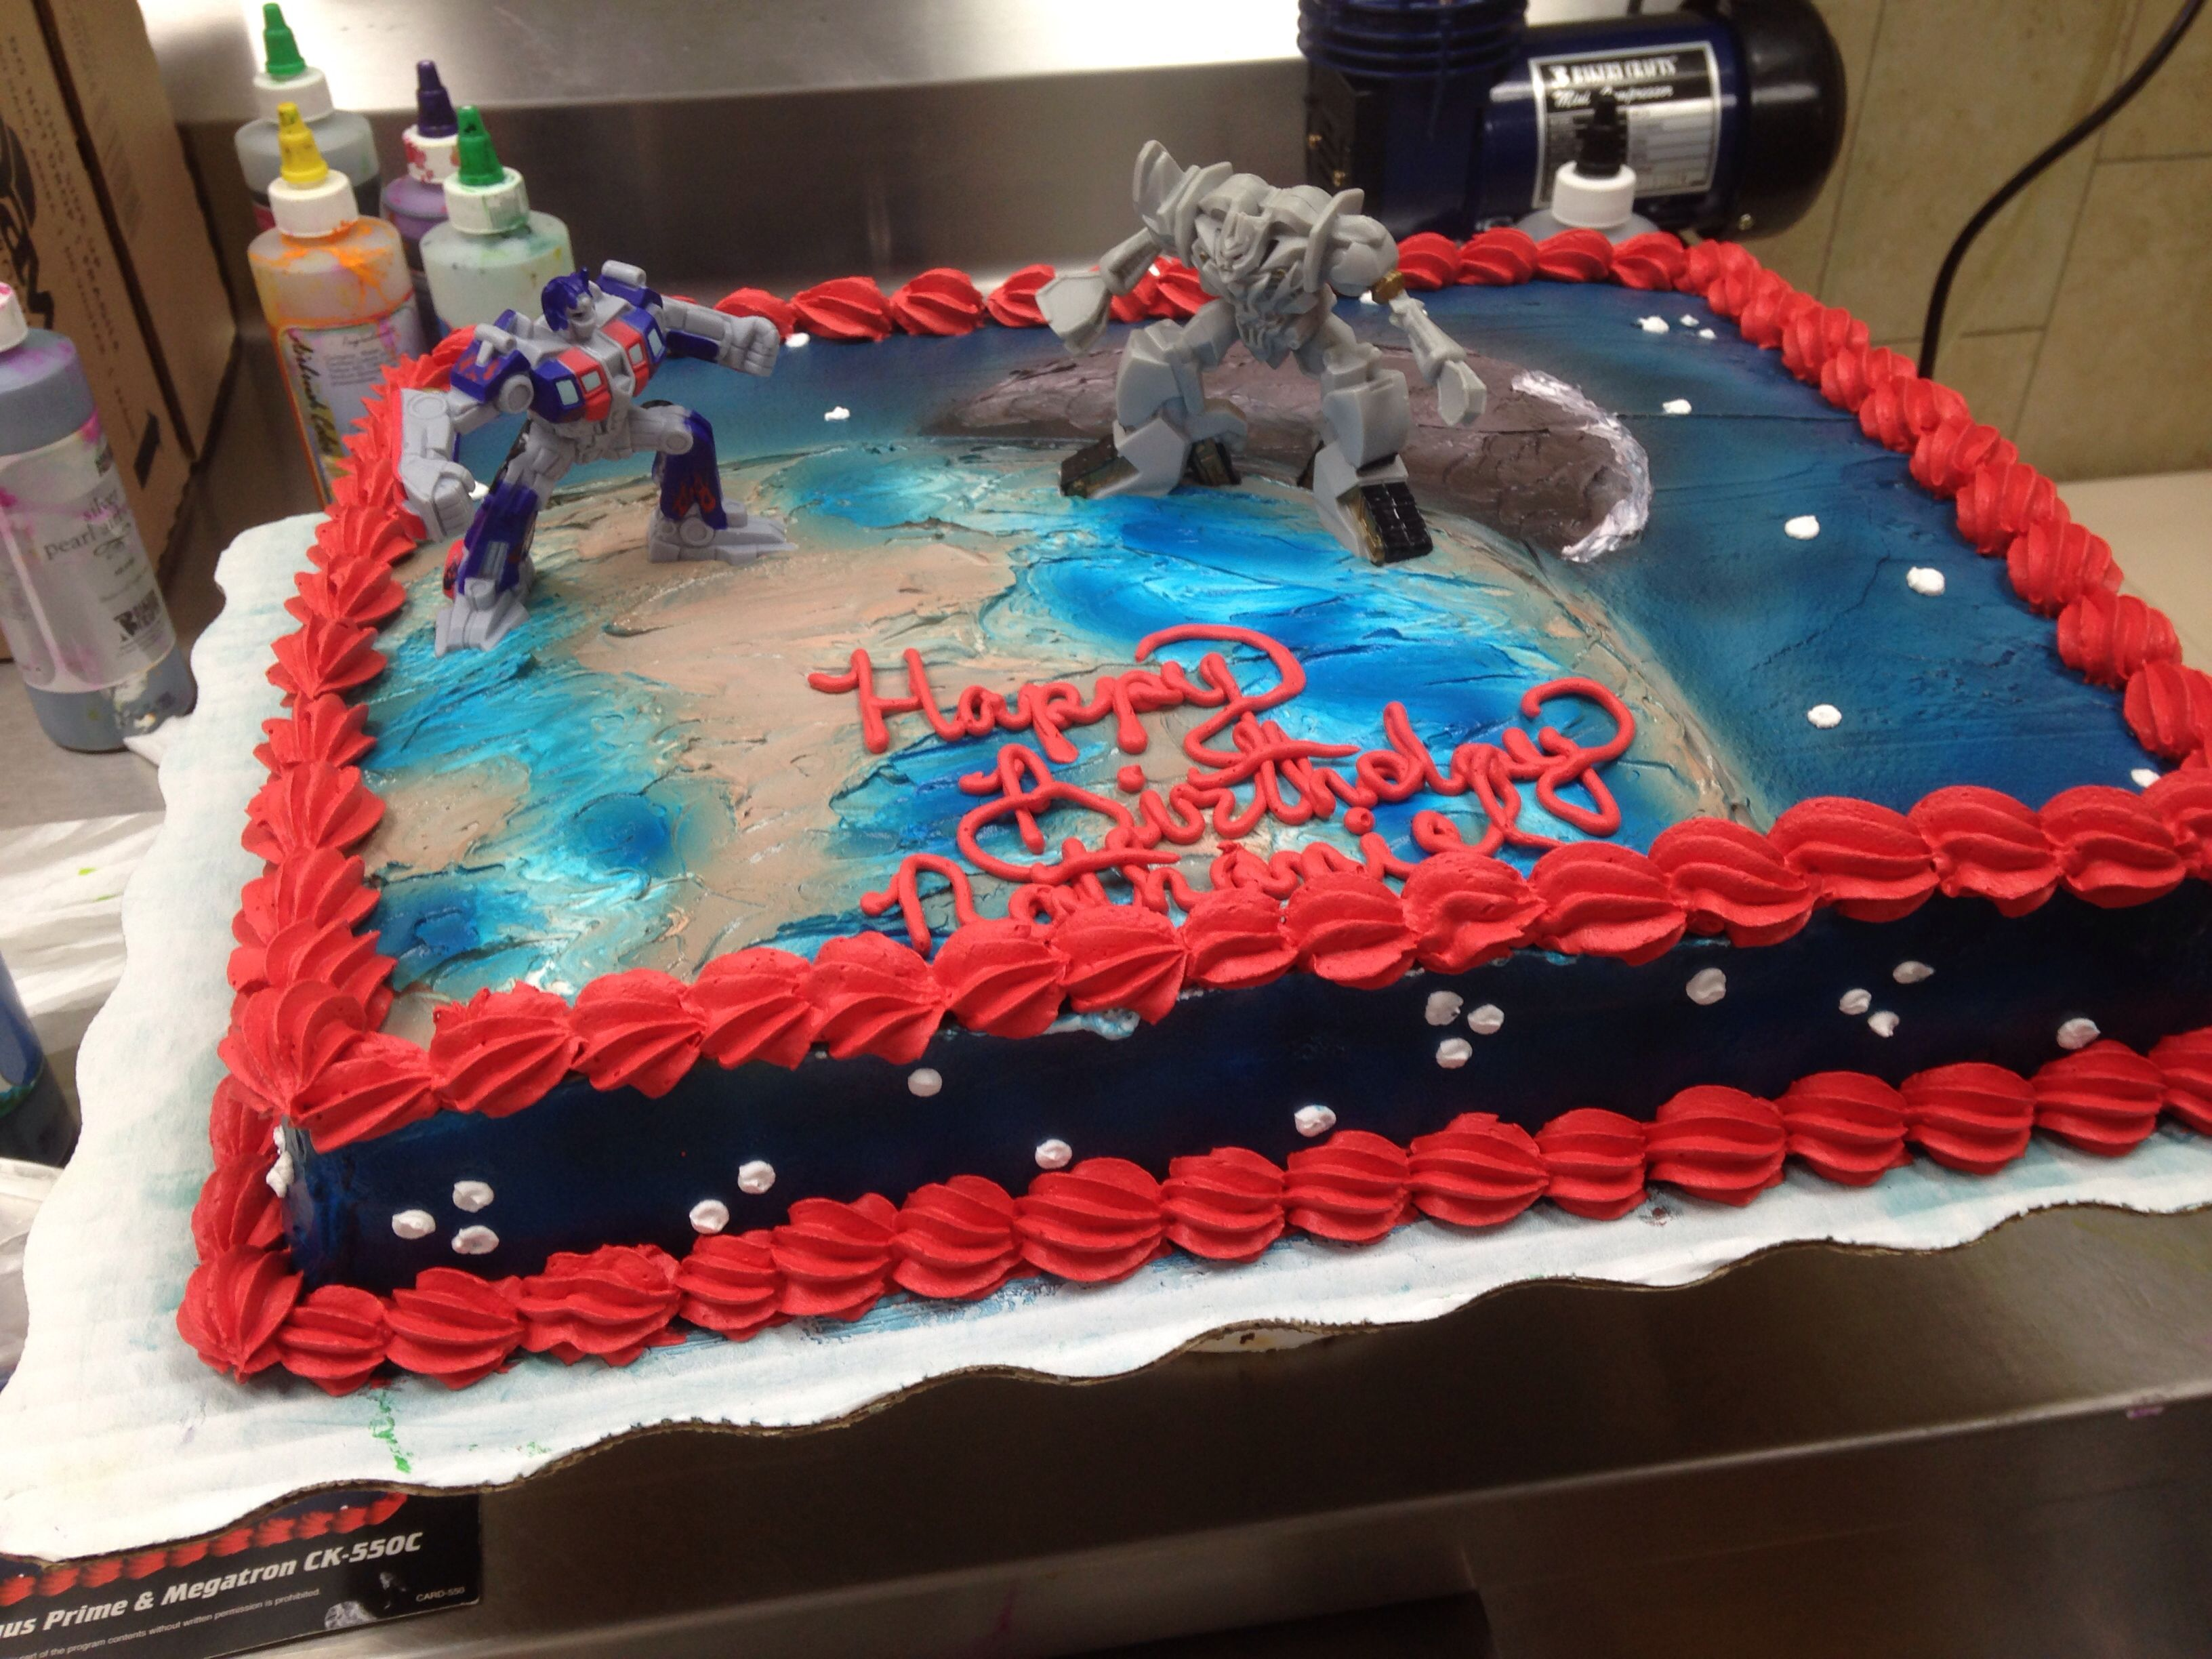 Transformers Cake Walmart Search Cakes Occupation Home Tips Will